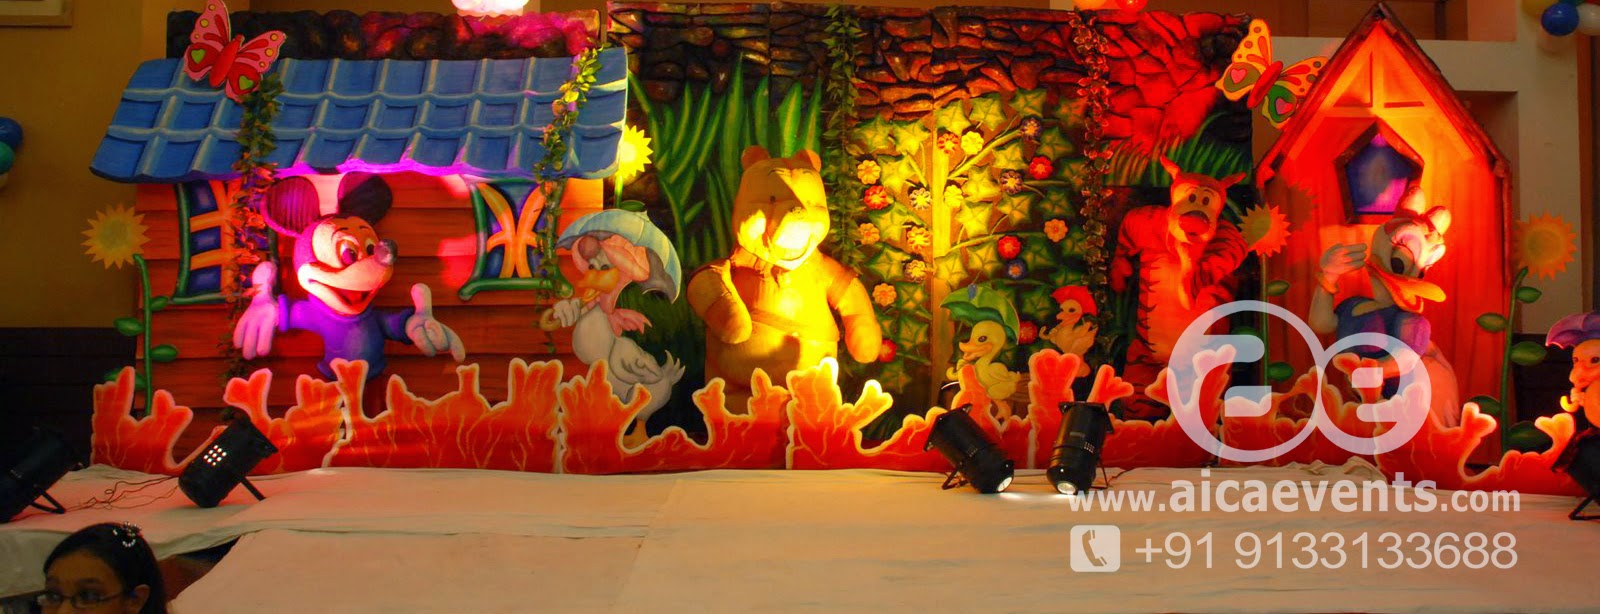 Aicaevents India Nursery Rhyme Birthday Party